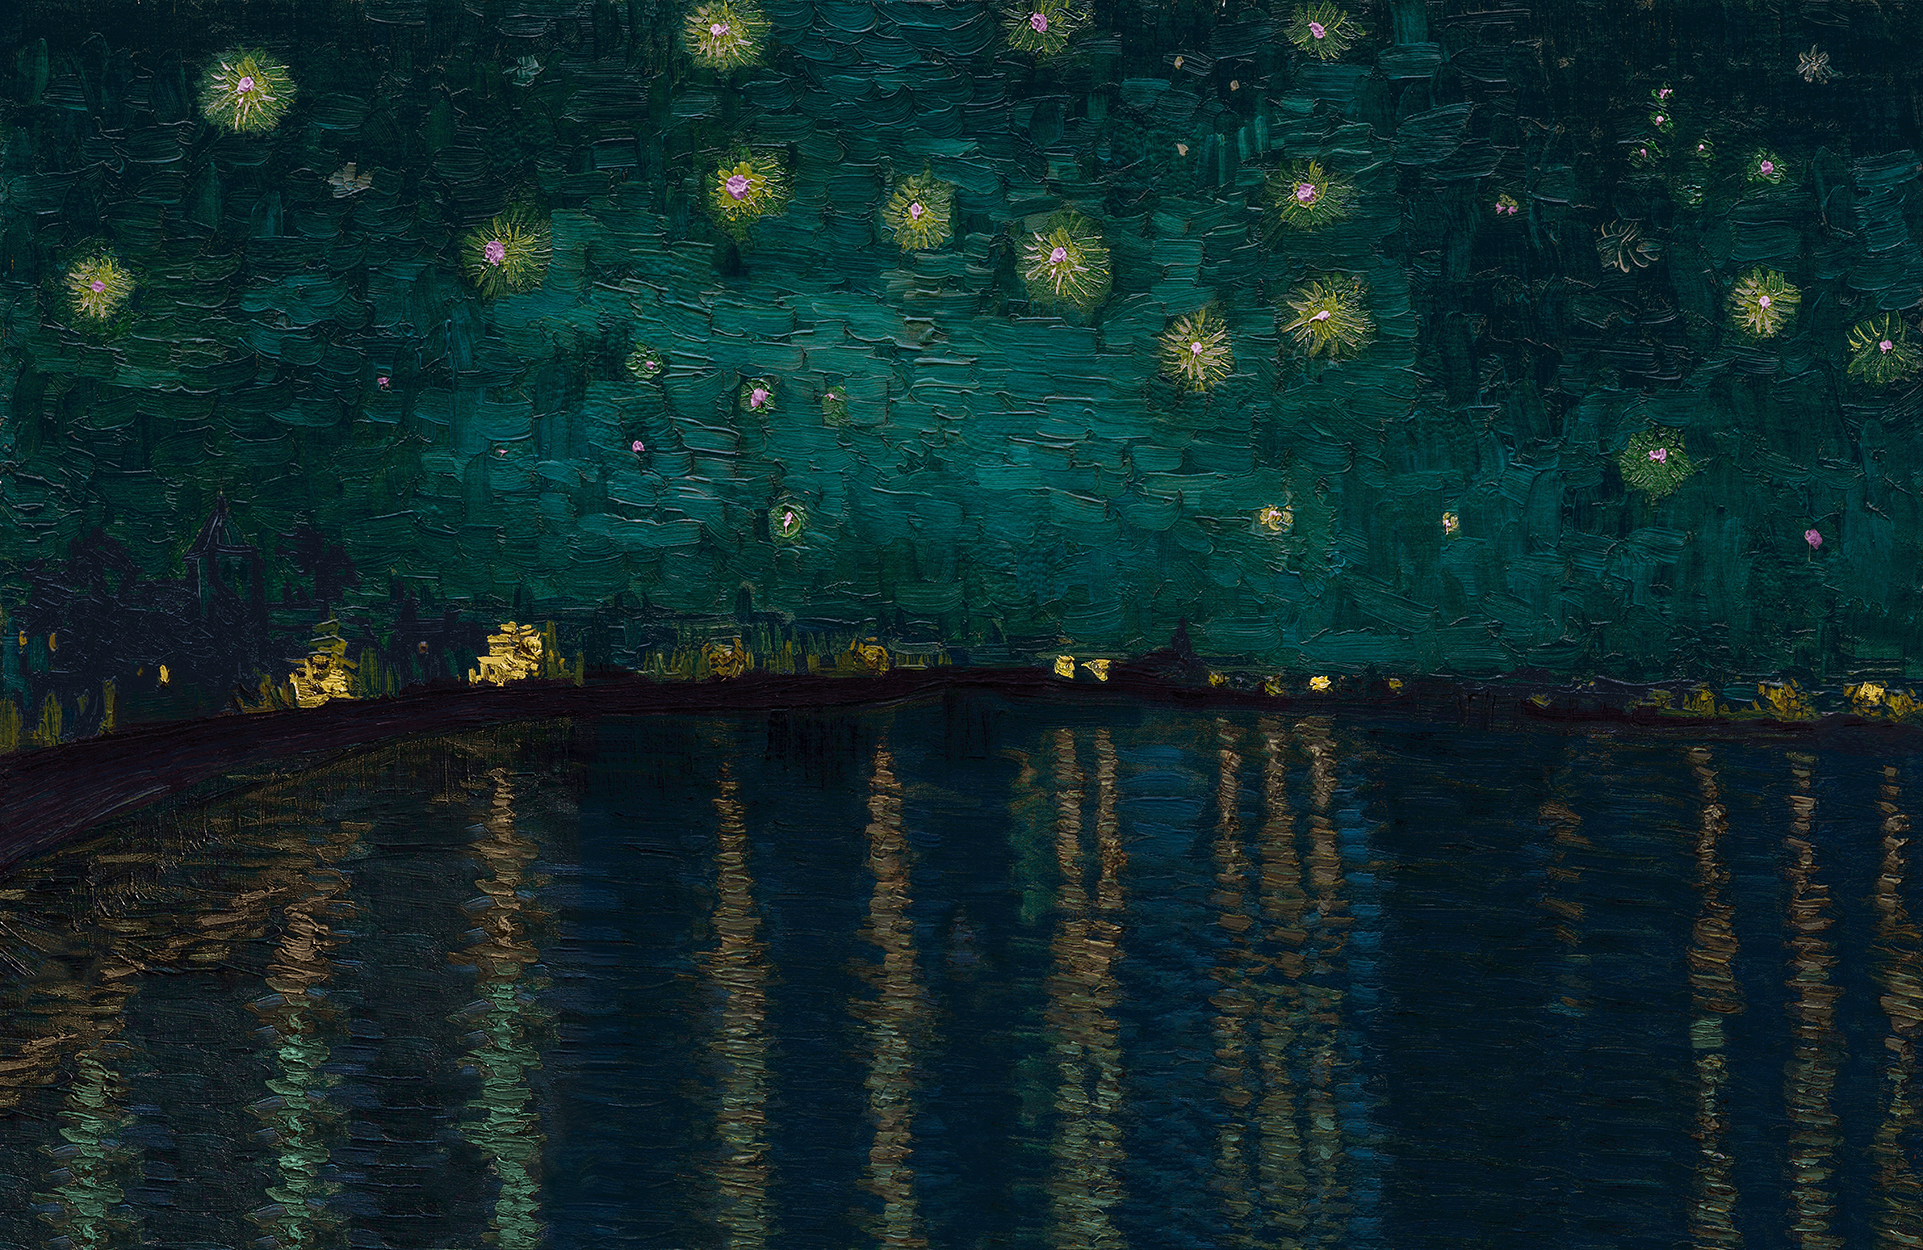 a play and after of van Gogh's starry night over the rhone except painted with the colors he described to his brother Theo in a letter; for example, an aquamarine sky, mauve land, and reflections of light from copper green to russet gold unlike his predisposition to yellow most likely due to an epilespy mediciation he was taking